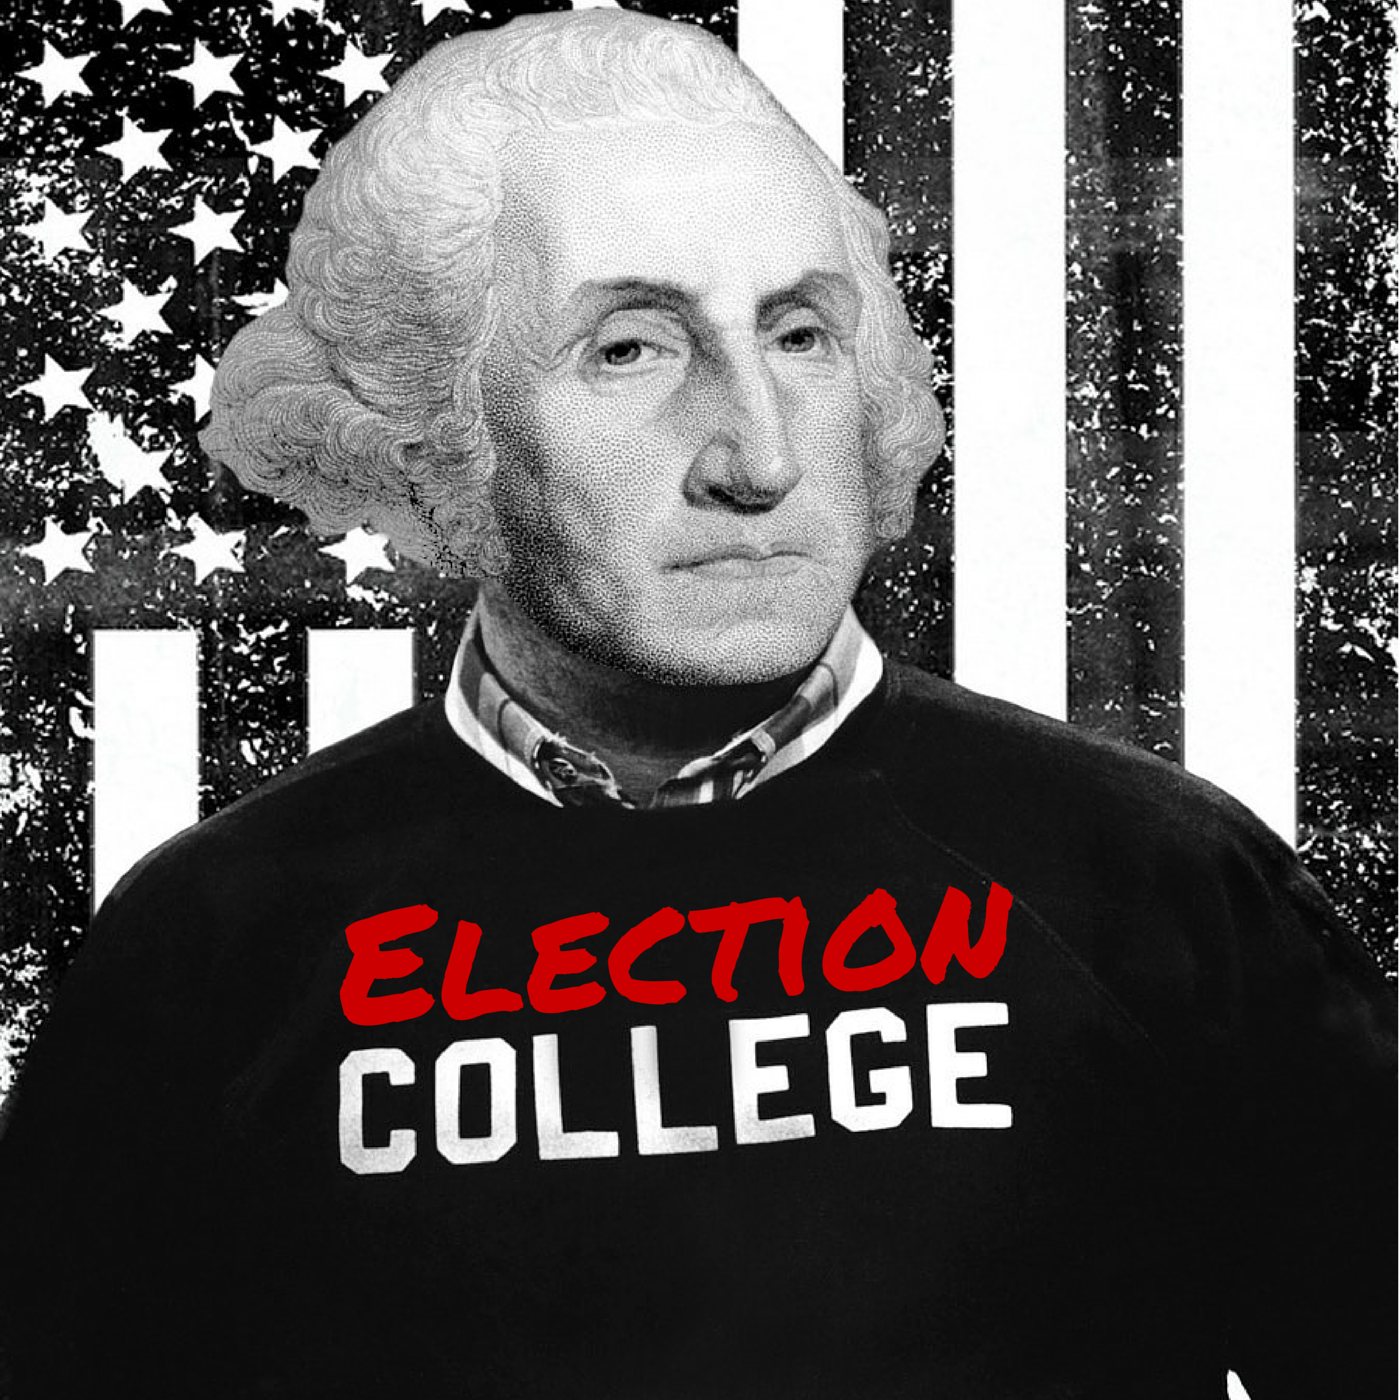 John Tyler - Part 1 | Episode #183 | Election College: United States Presidential Election History